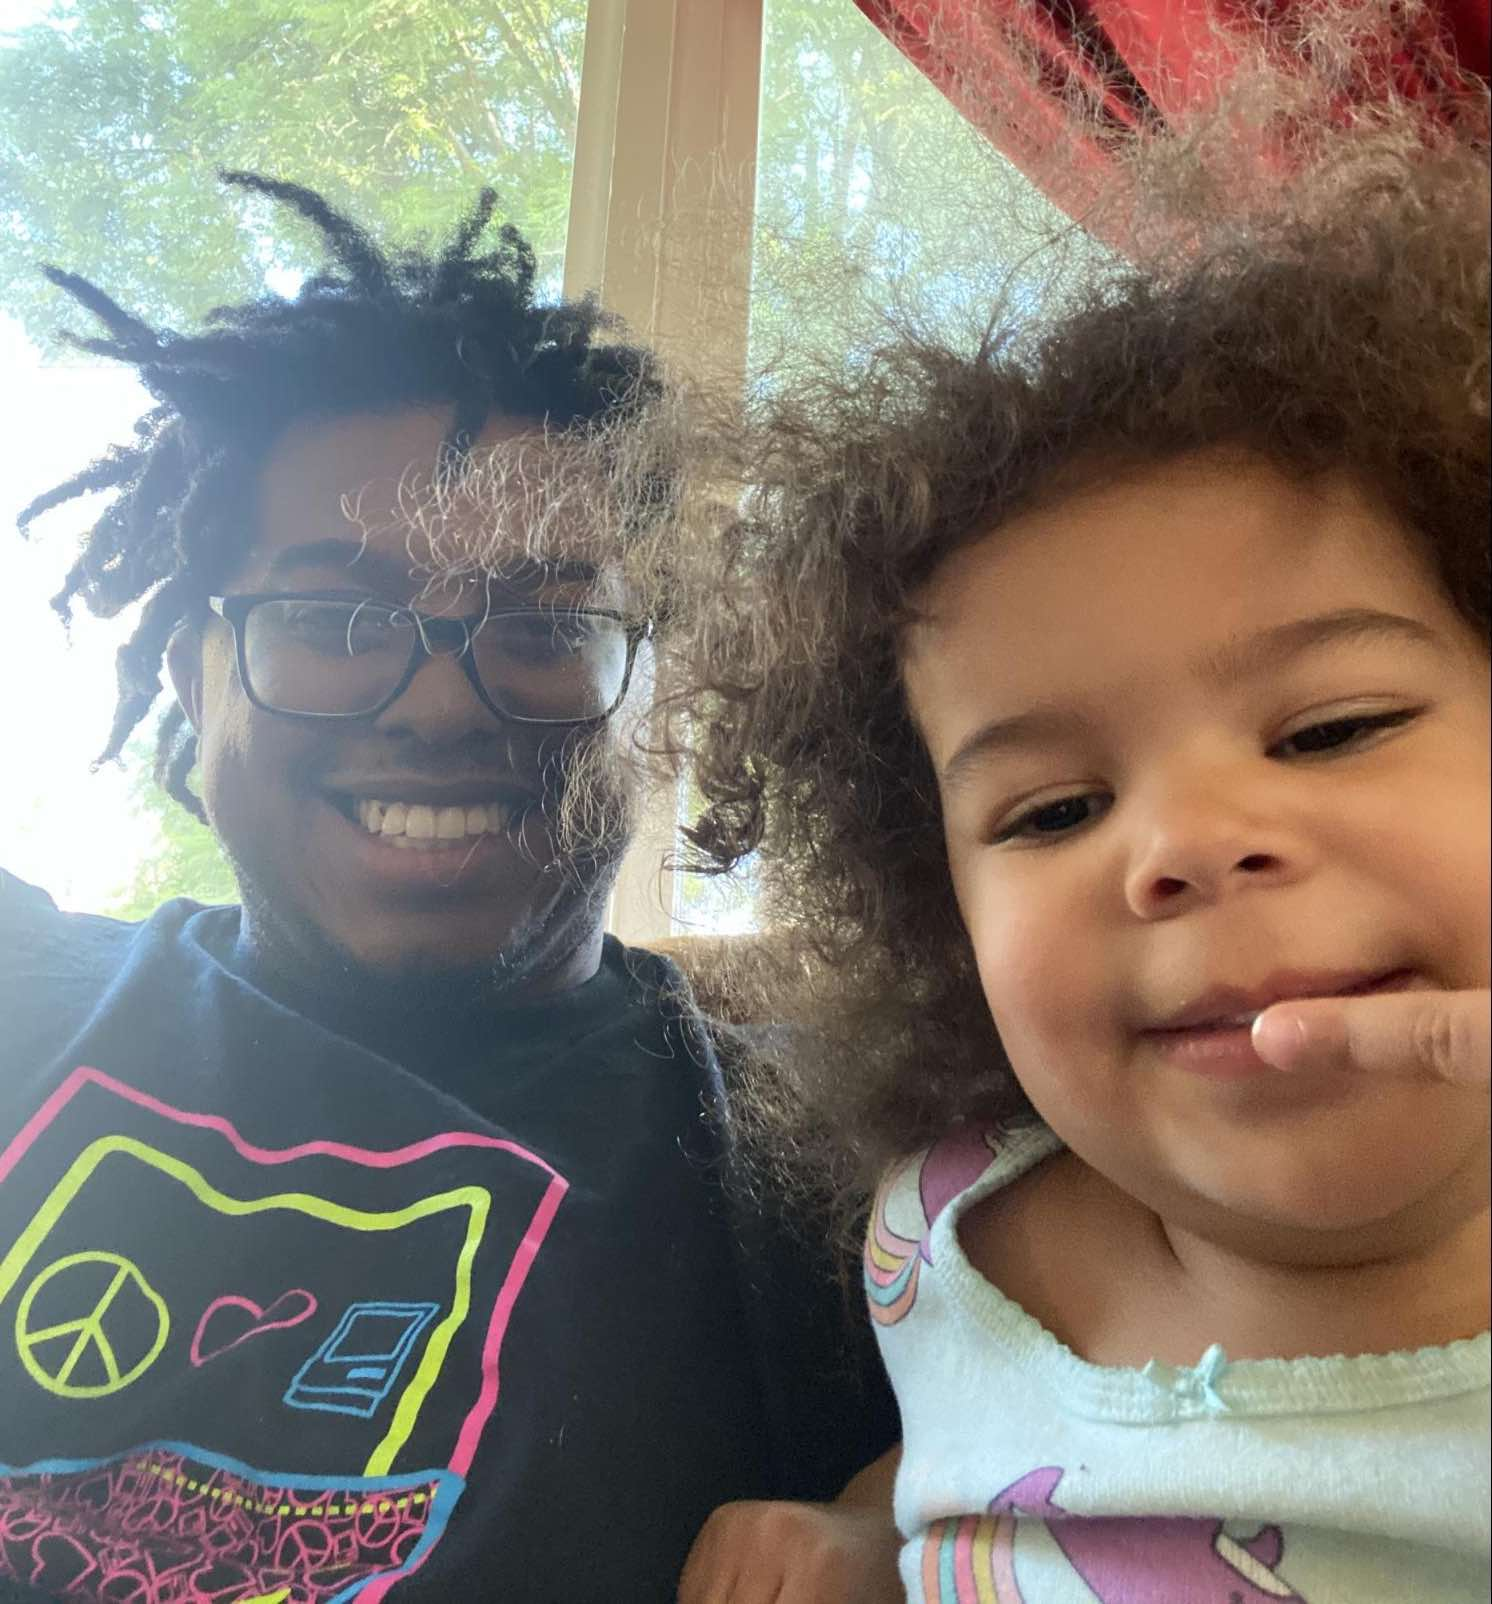 Jay and his daughter.